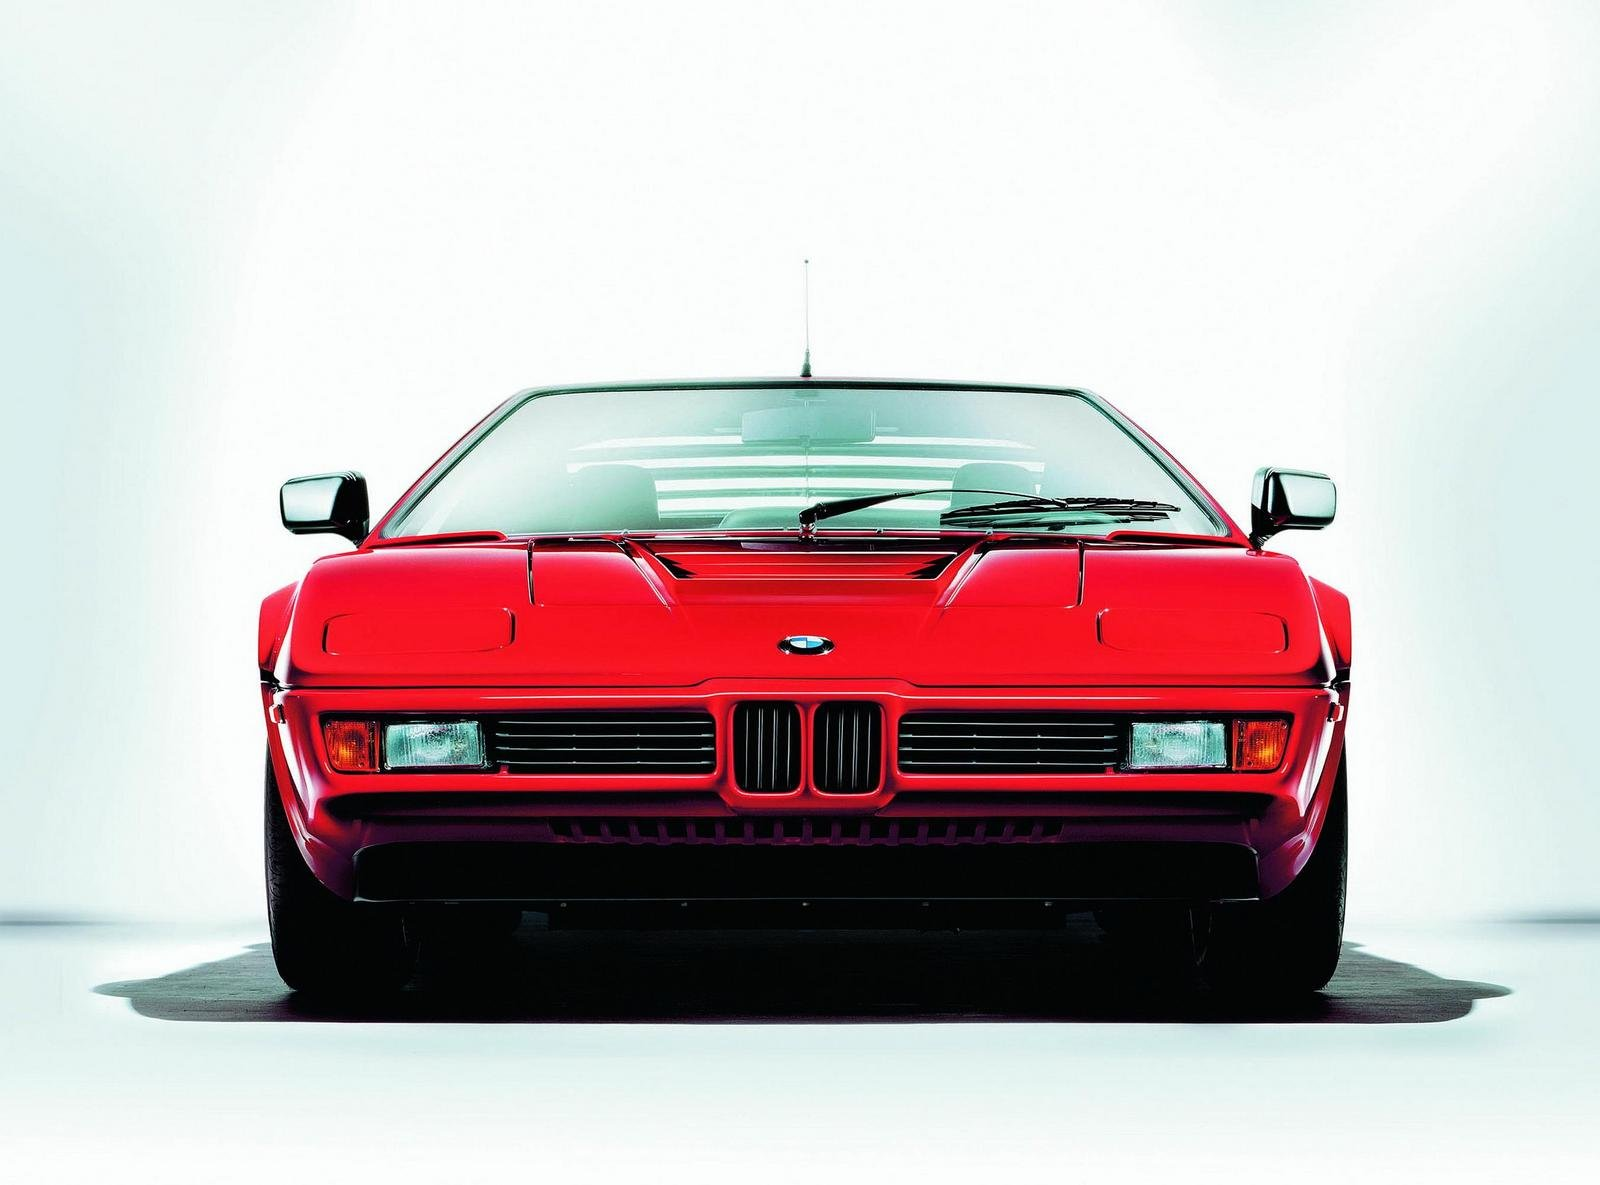 30-years-of-bmw-m1-1_1600x0w